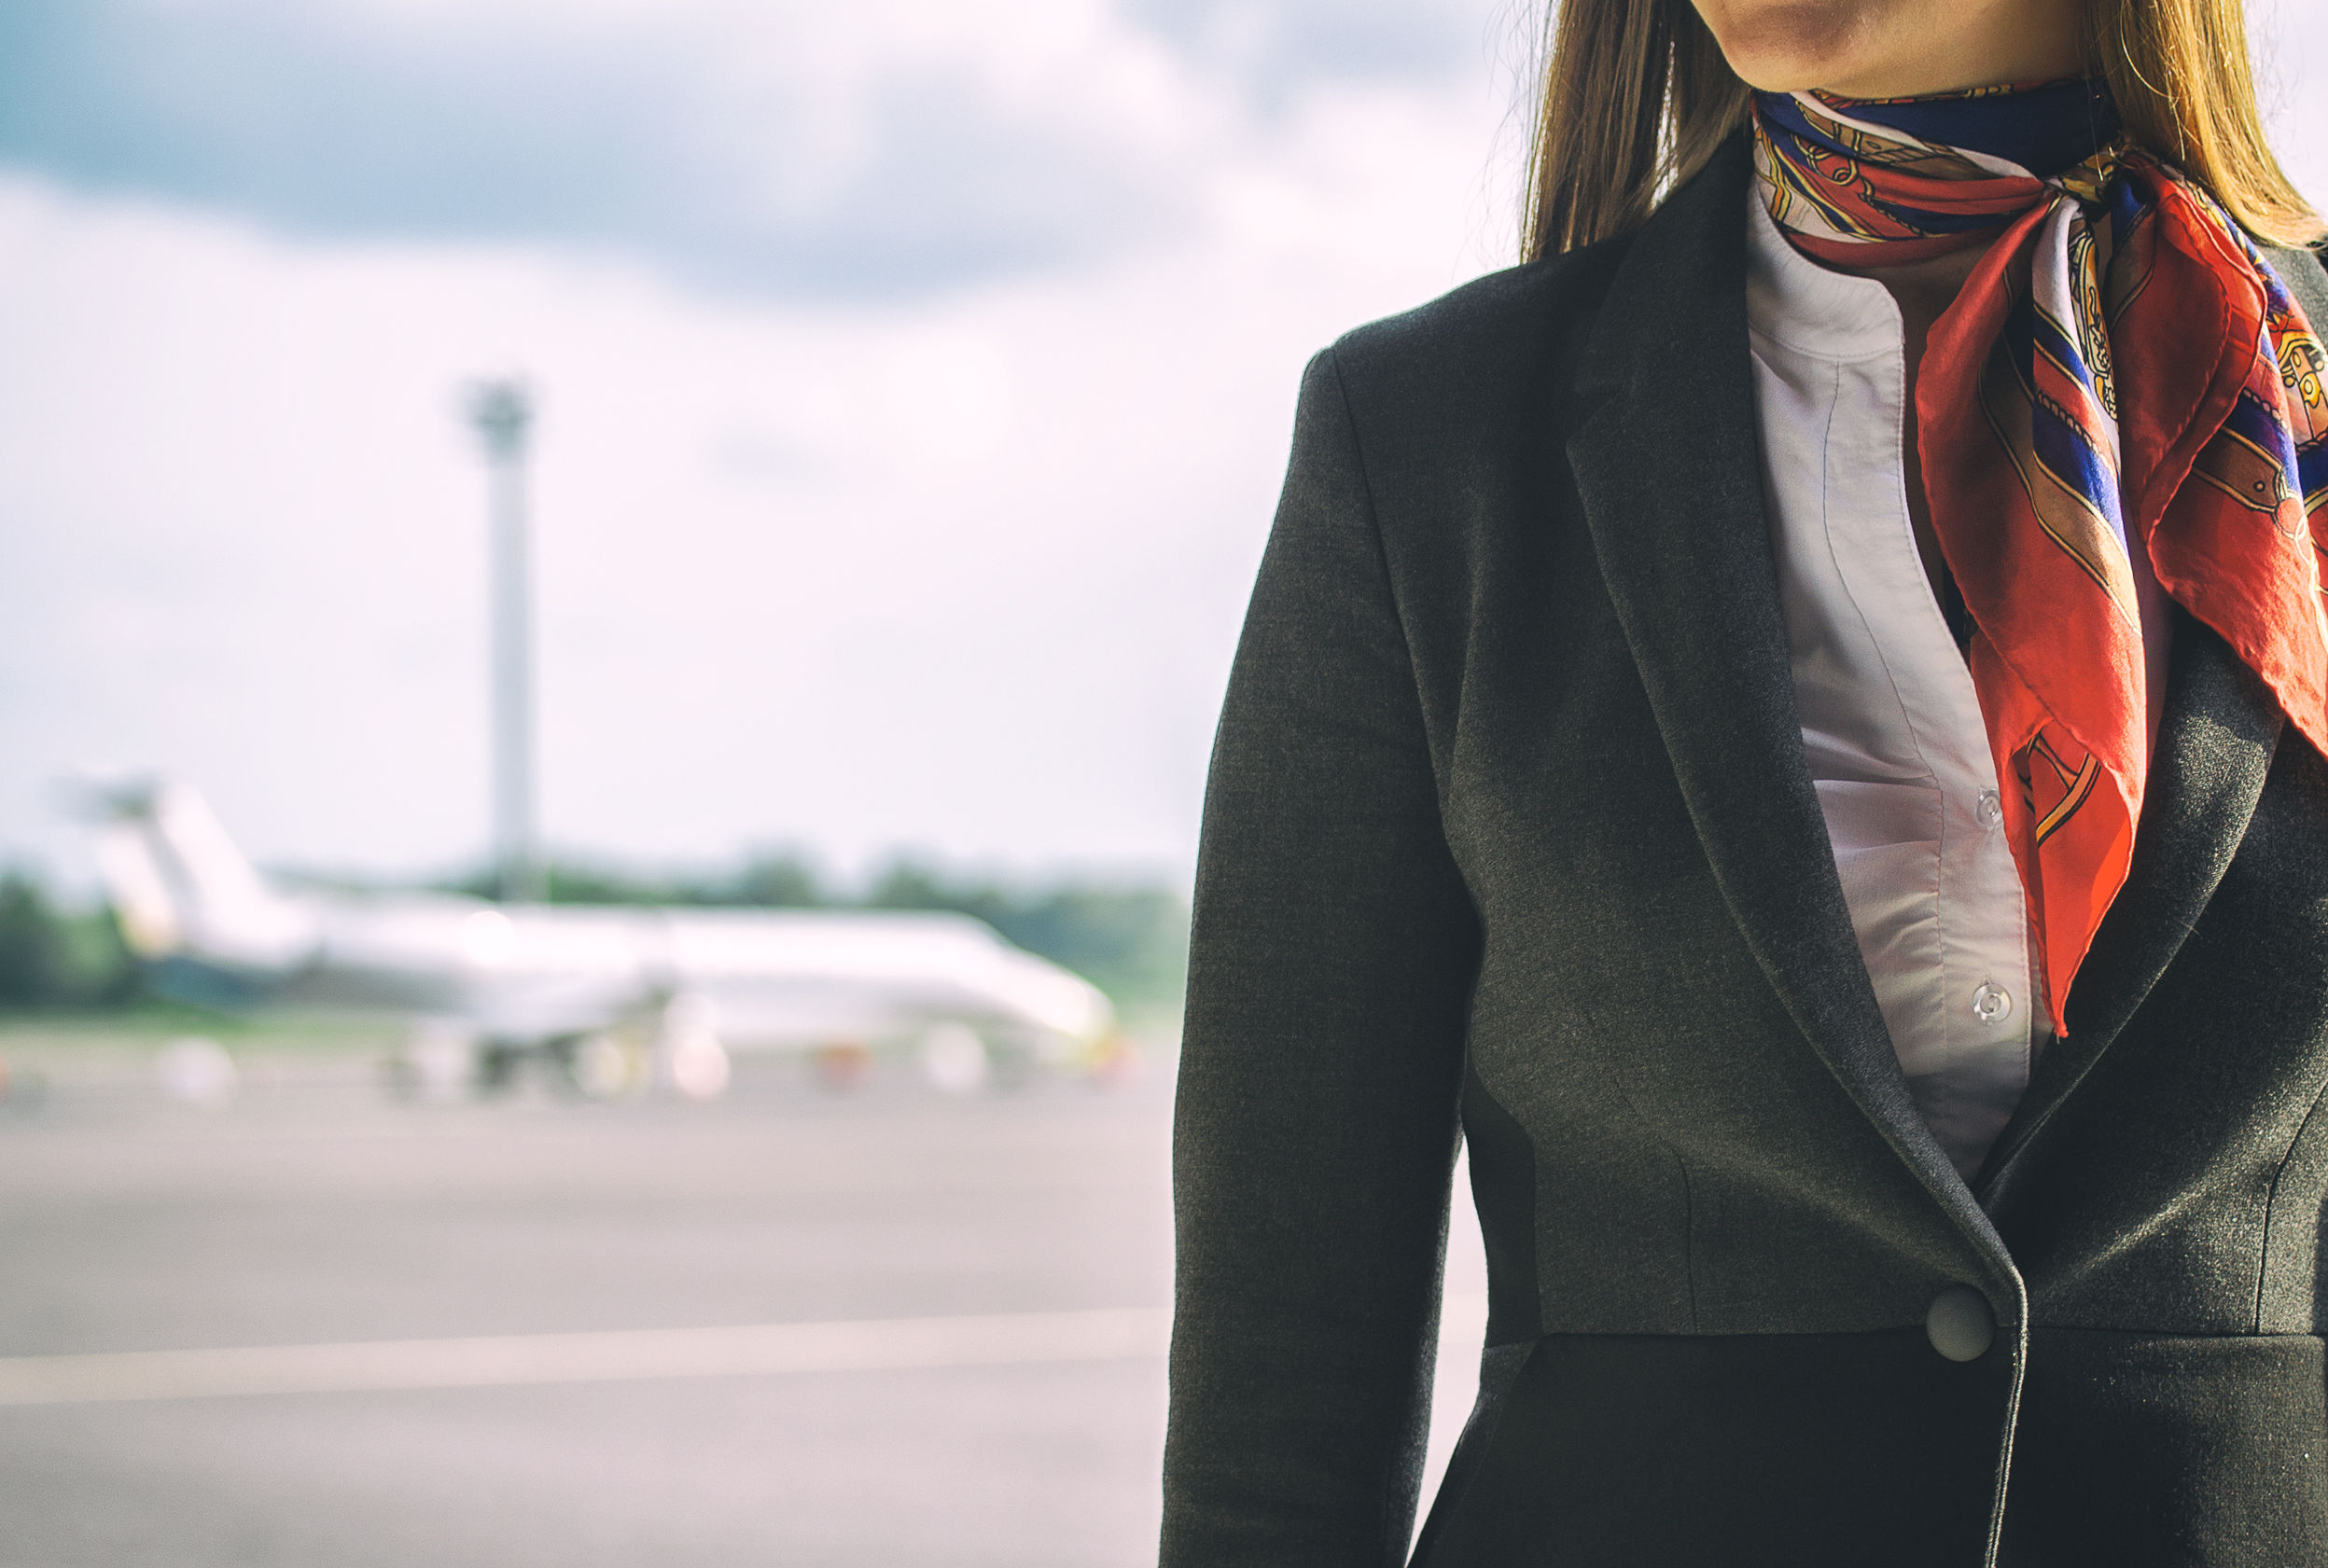 hooking up with a flight attendant